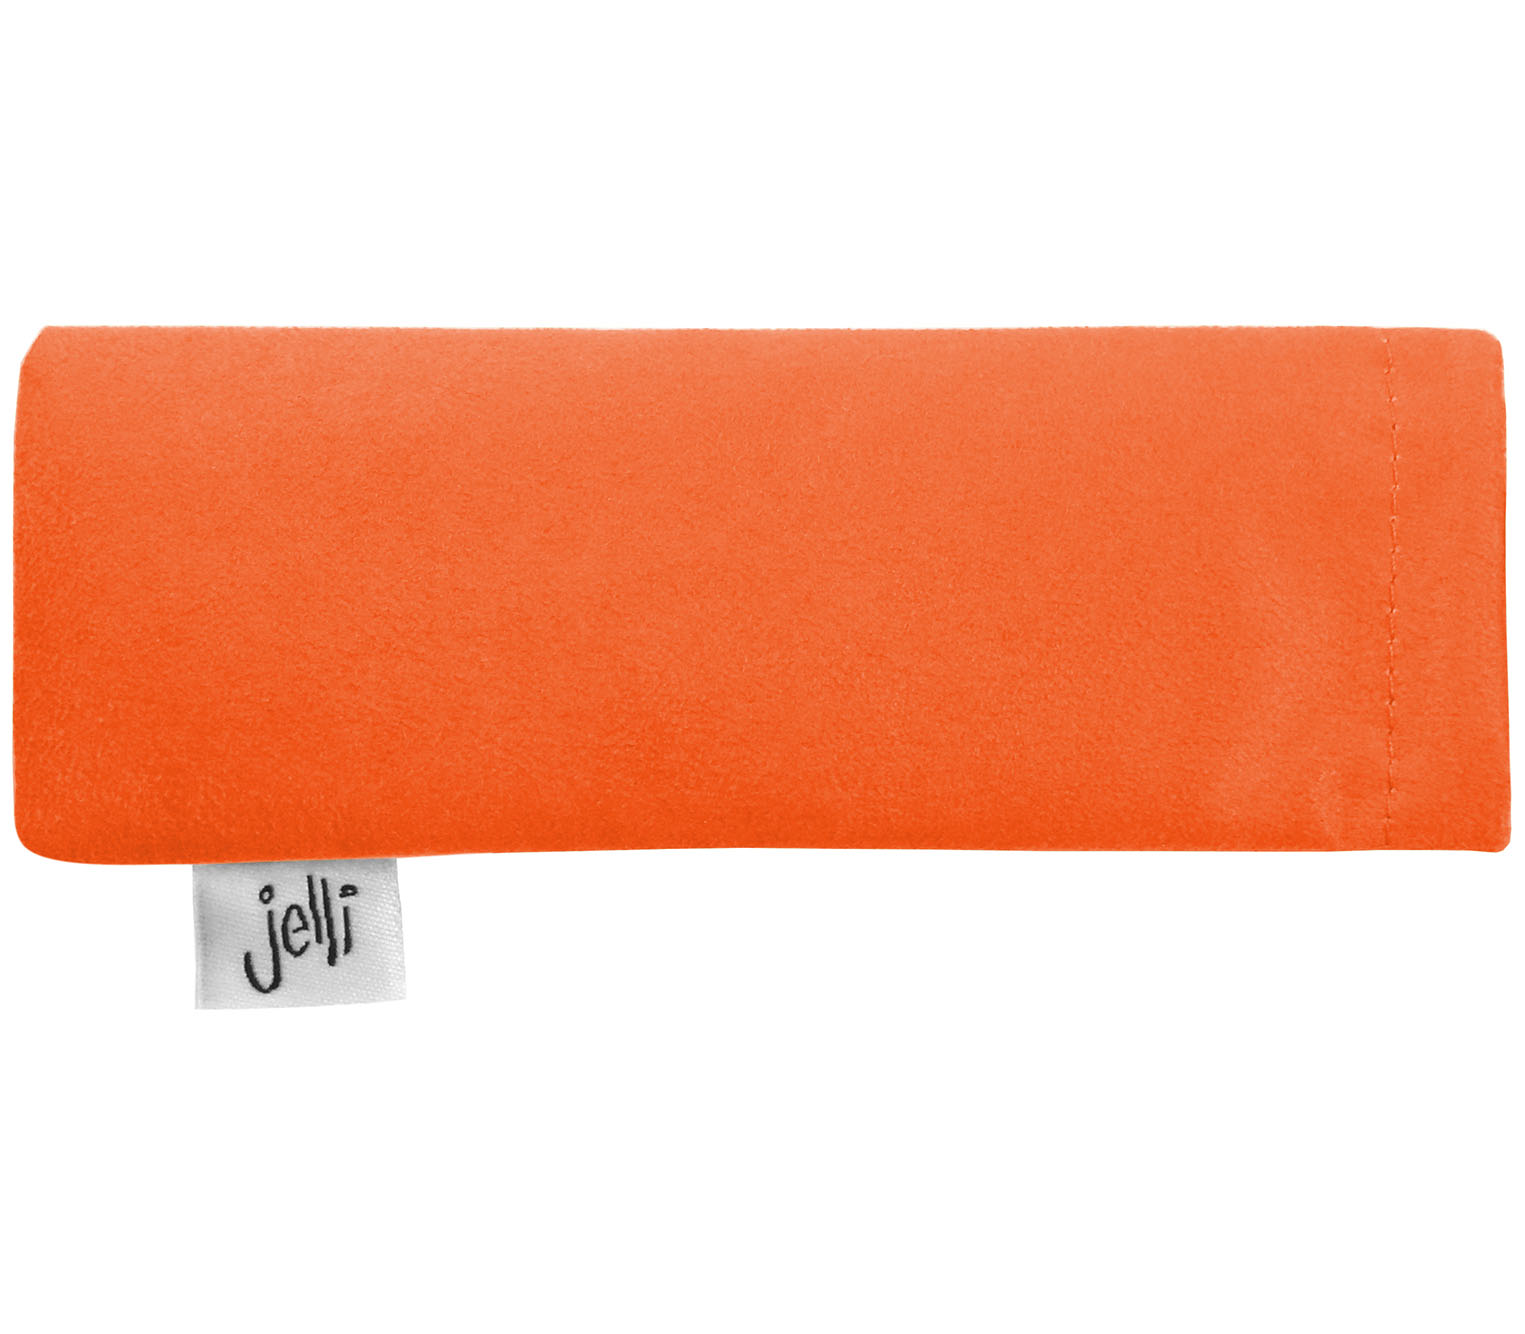 Case - Jelli Neon (Orange)